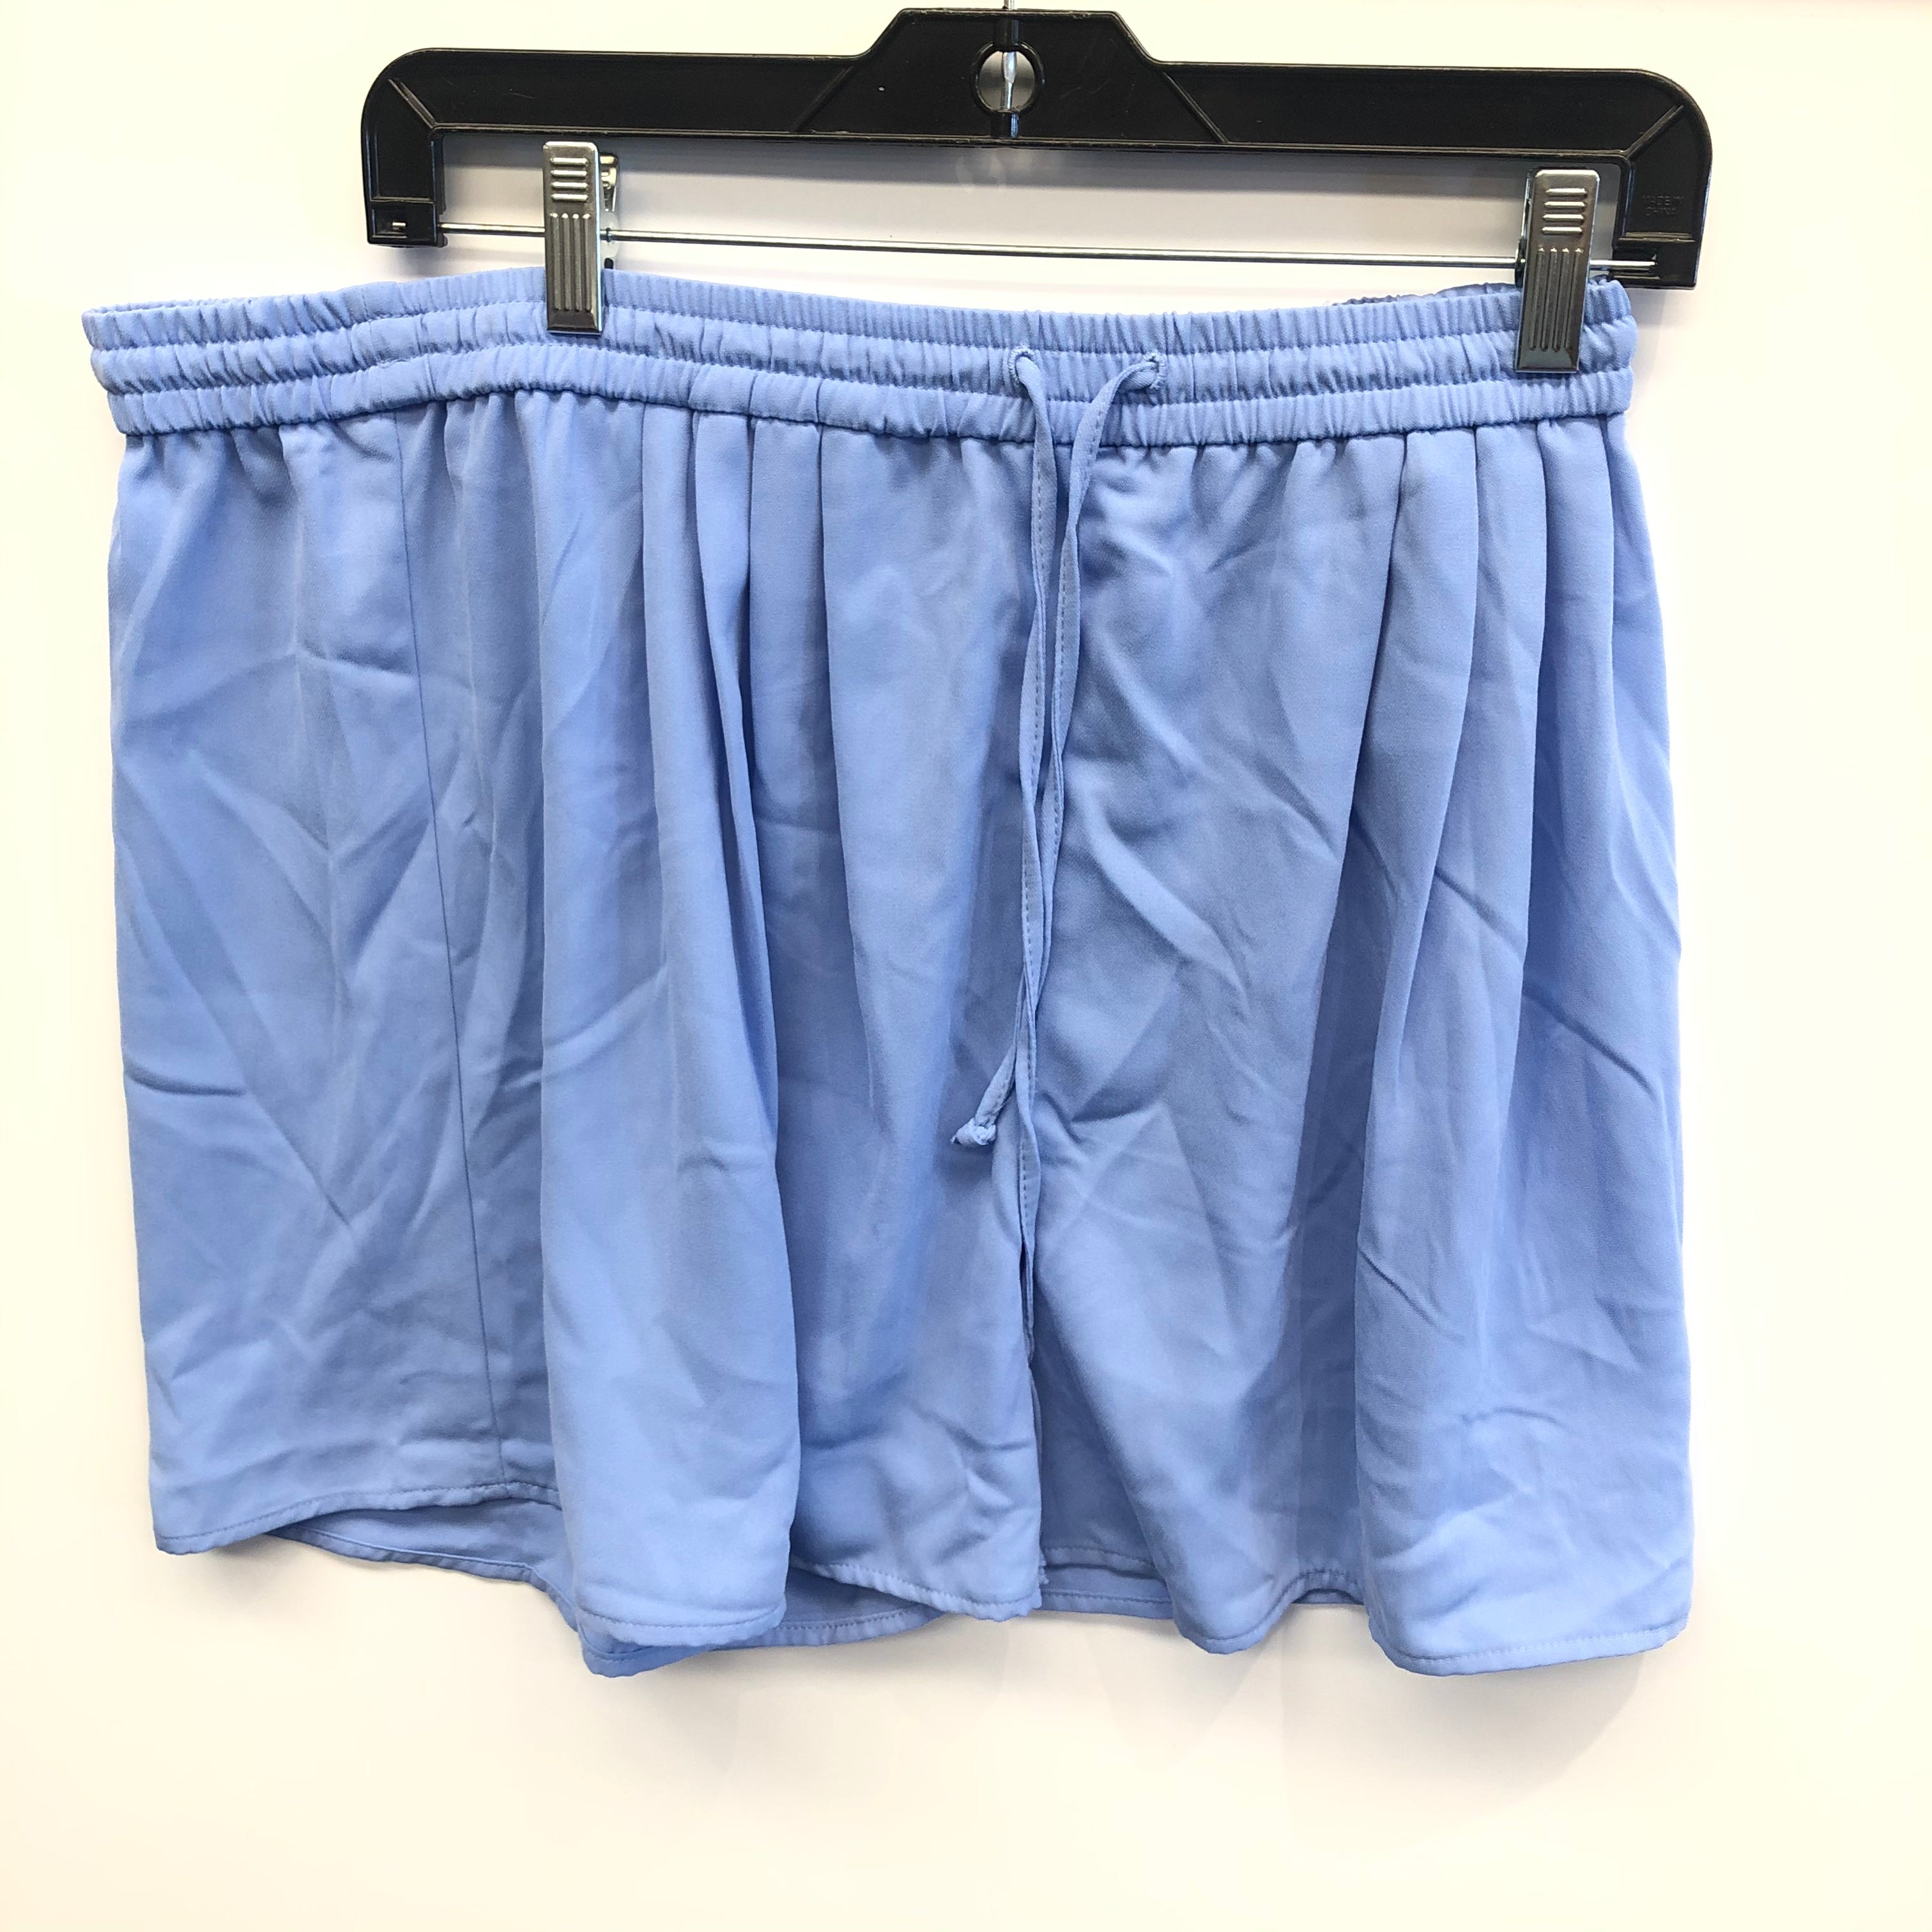 Primary Photo - BRAND: J CREW <BR>STYLE: SHORTS <BR>COLOR: BLUE <BR>SIZE: L <BR>SKU: 205-205250-57543